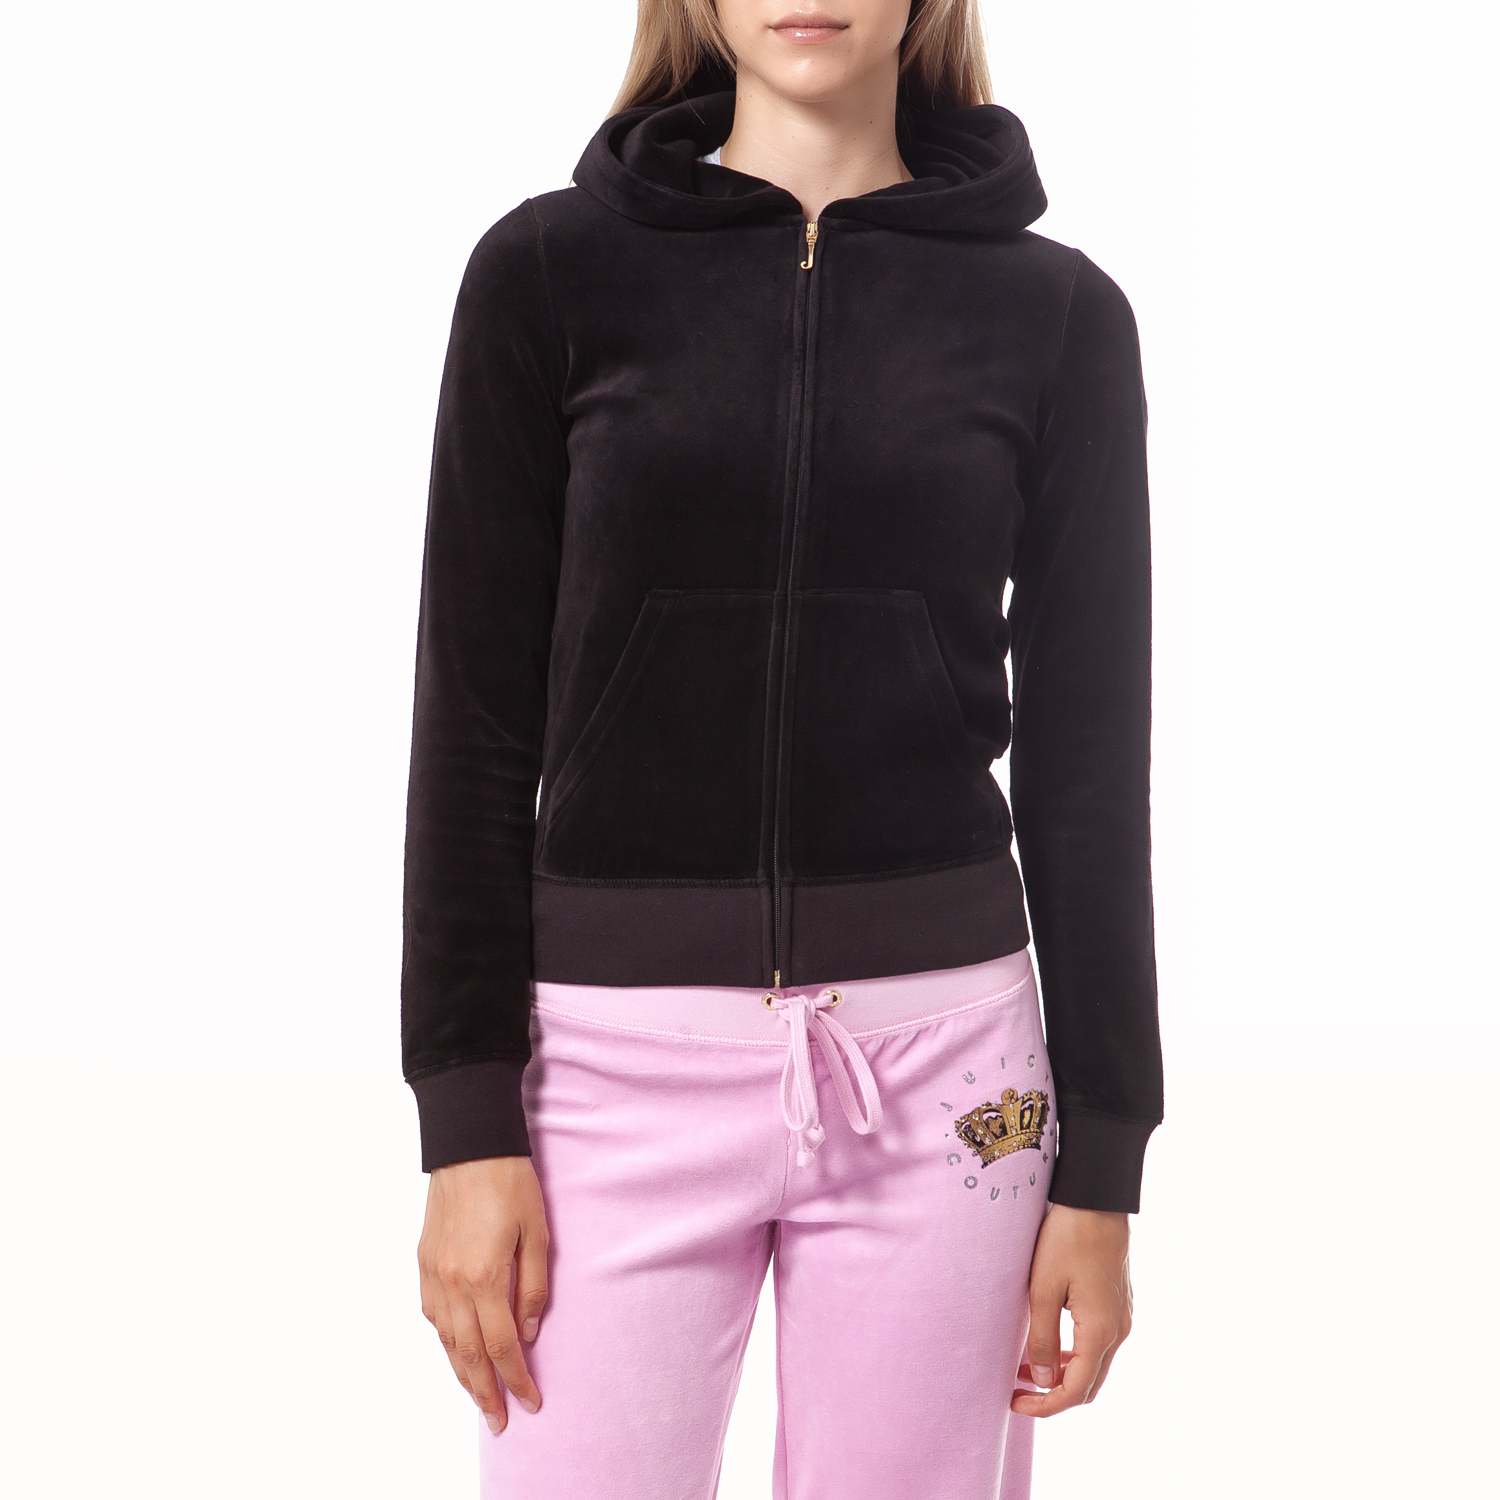 JUICY COUTURE - Γυναικεία ζακέτα Juicy Couture μαύρη